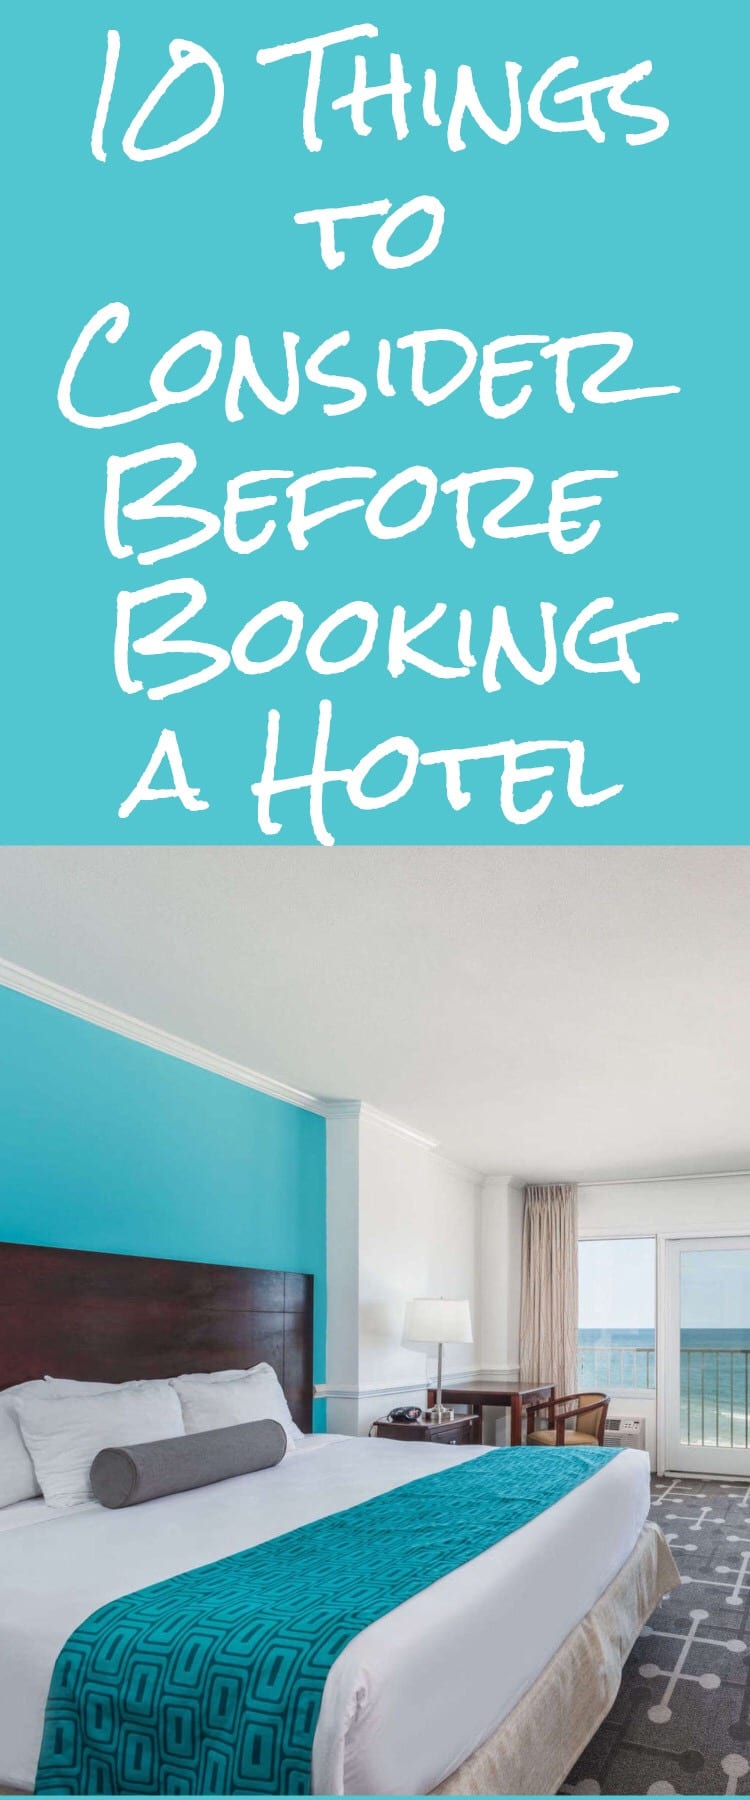 10 Things to Consider Before Booking a Hotel via @clarkscondensed